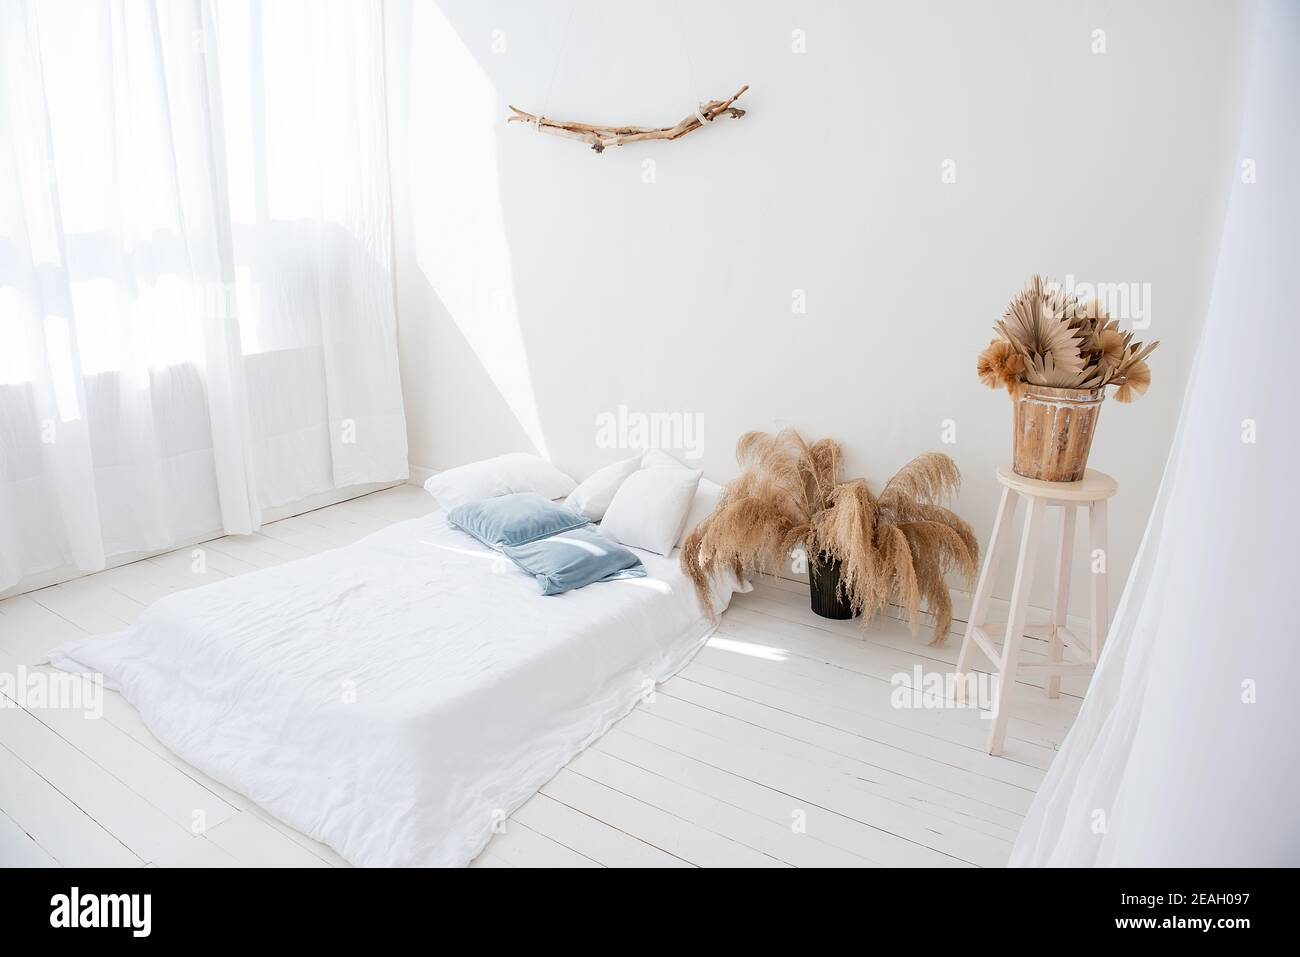 Minimalistic white loft in Scandinavian interior style. There is bed on wooden floor, light airy tulles on the windows, there is pampas grass in vases Stock Photo